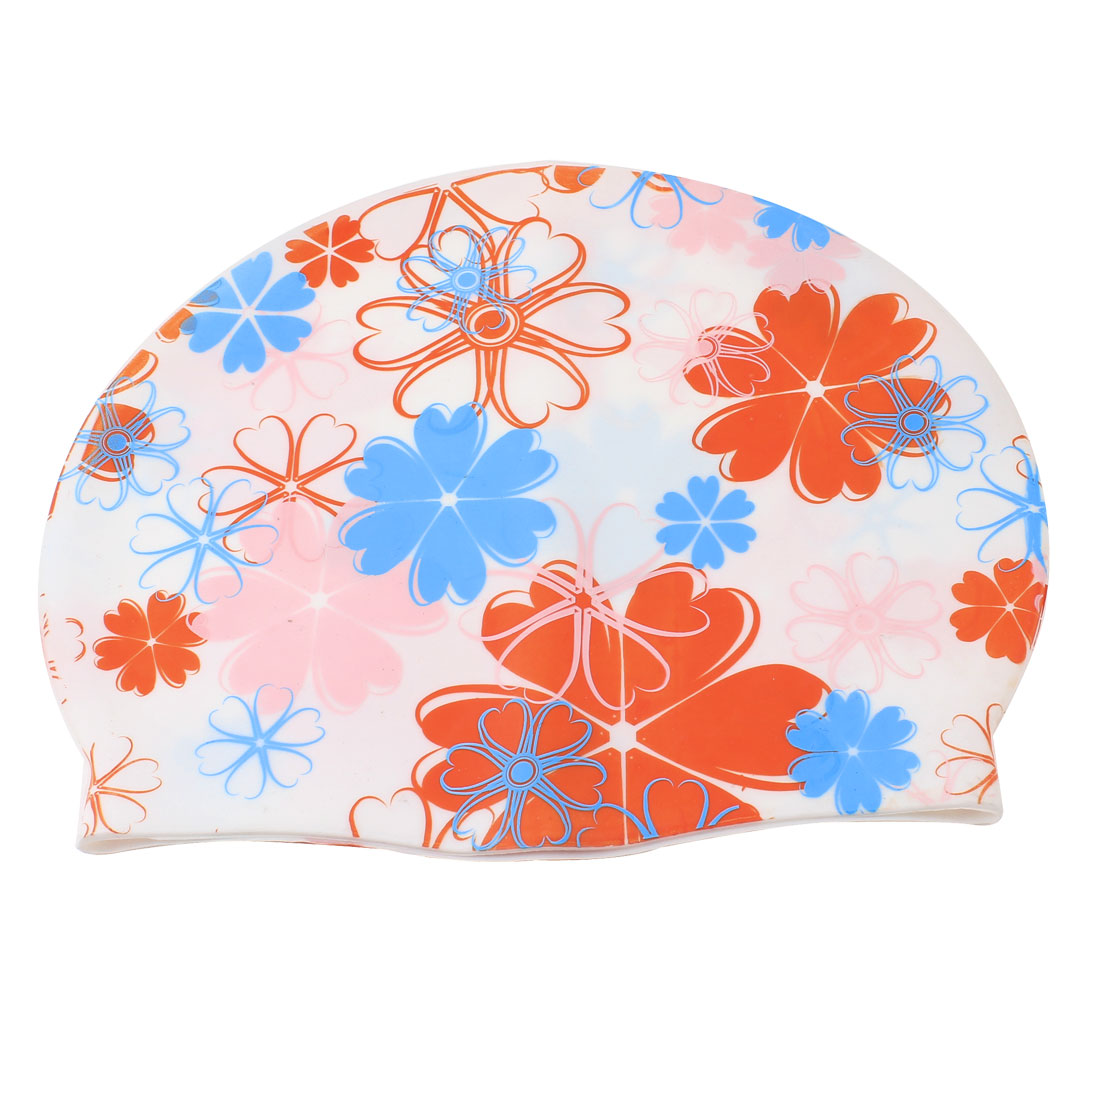 Adult Flower Printed Assorted Color Silicone Dome Shaped Elastic Swim Swimming Training Cap